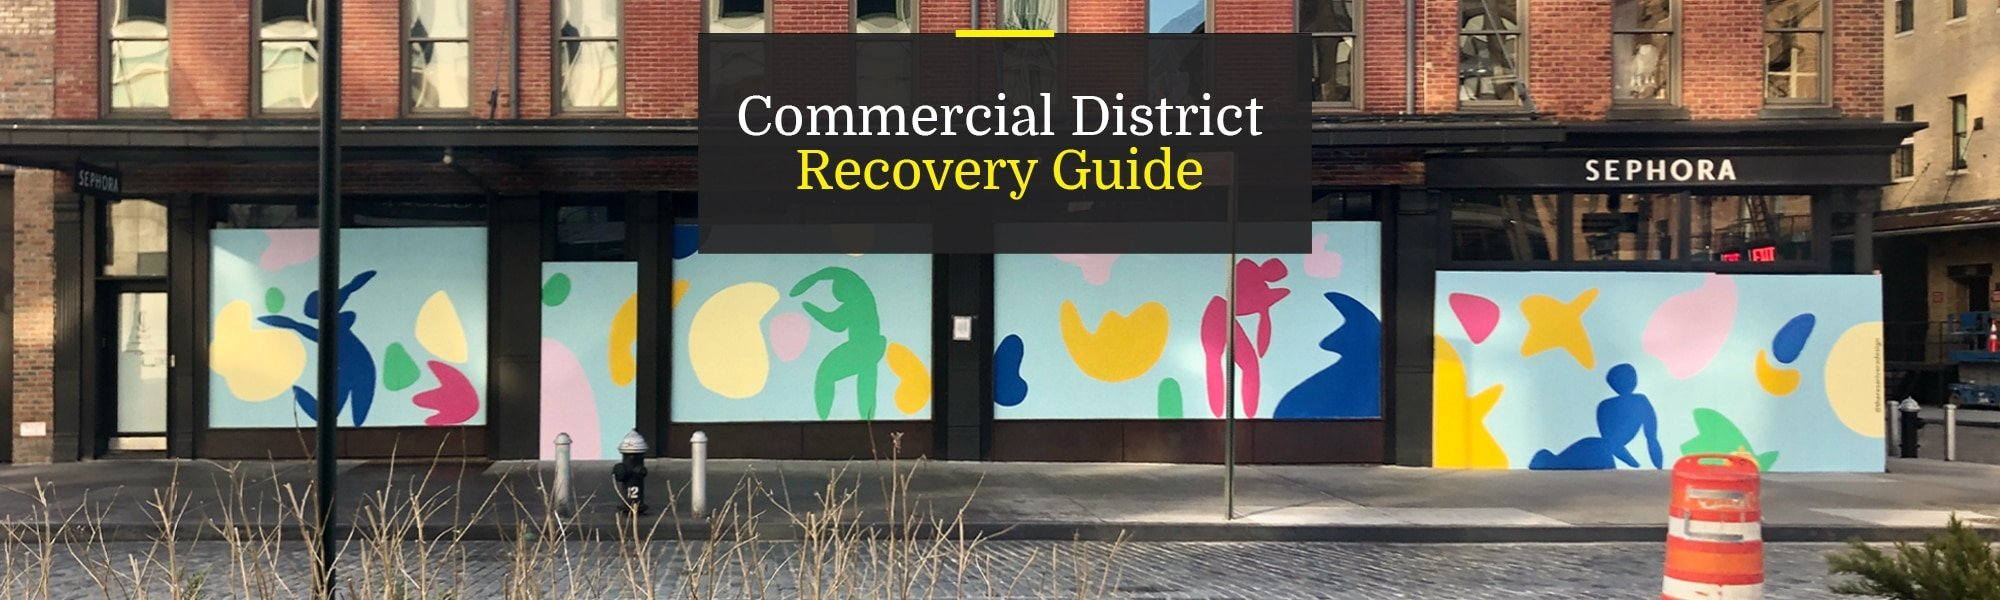 Commercial District Recovery Guide